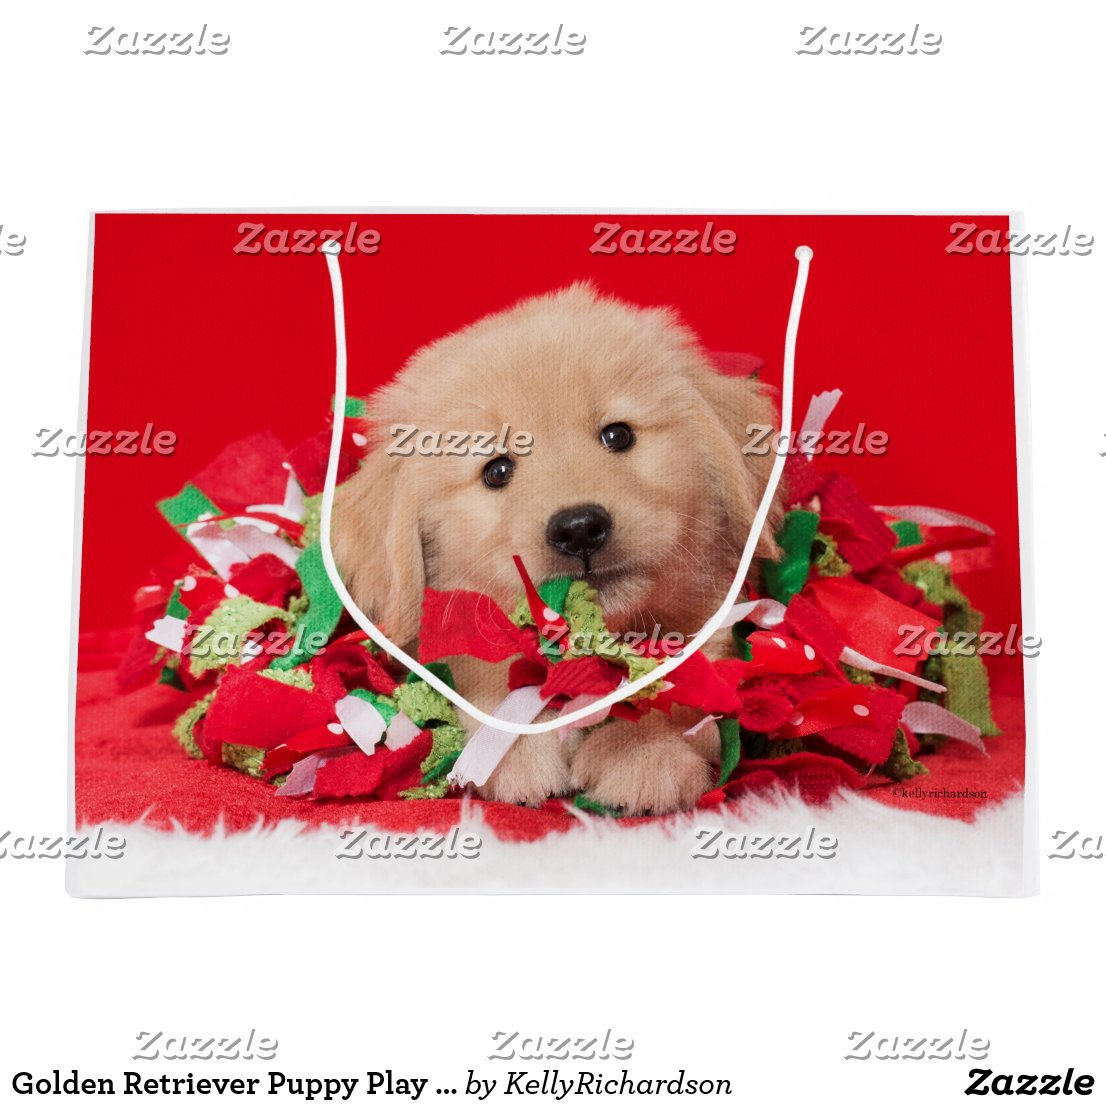 Golden Retriever Puppy Play in Holiday Garland